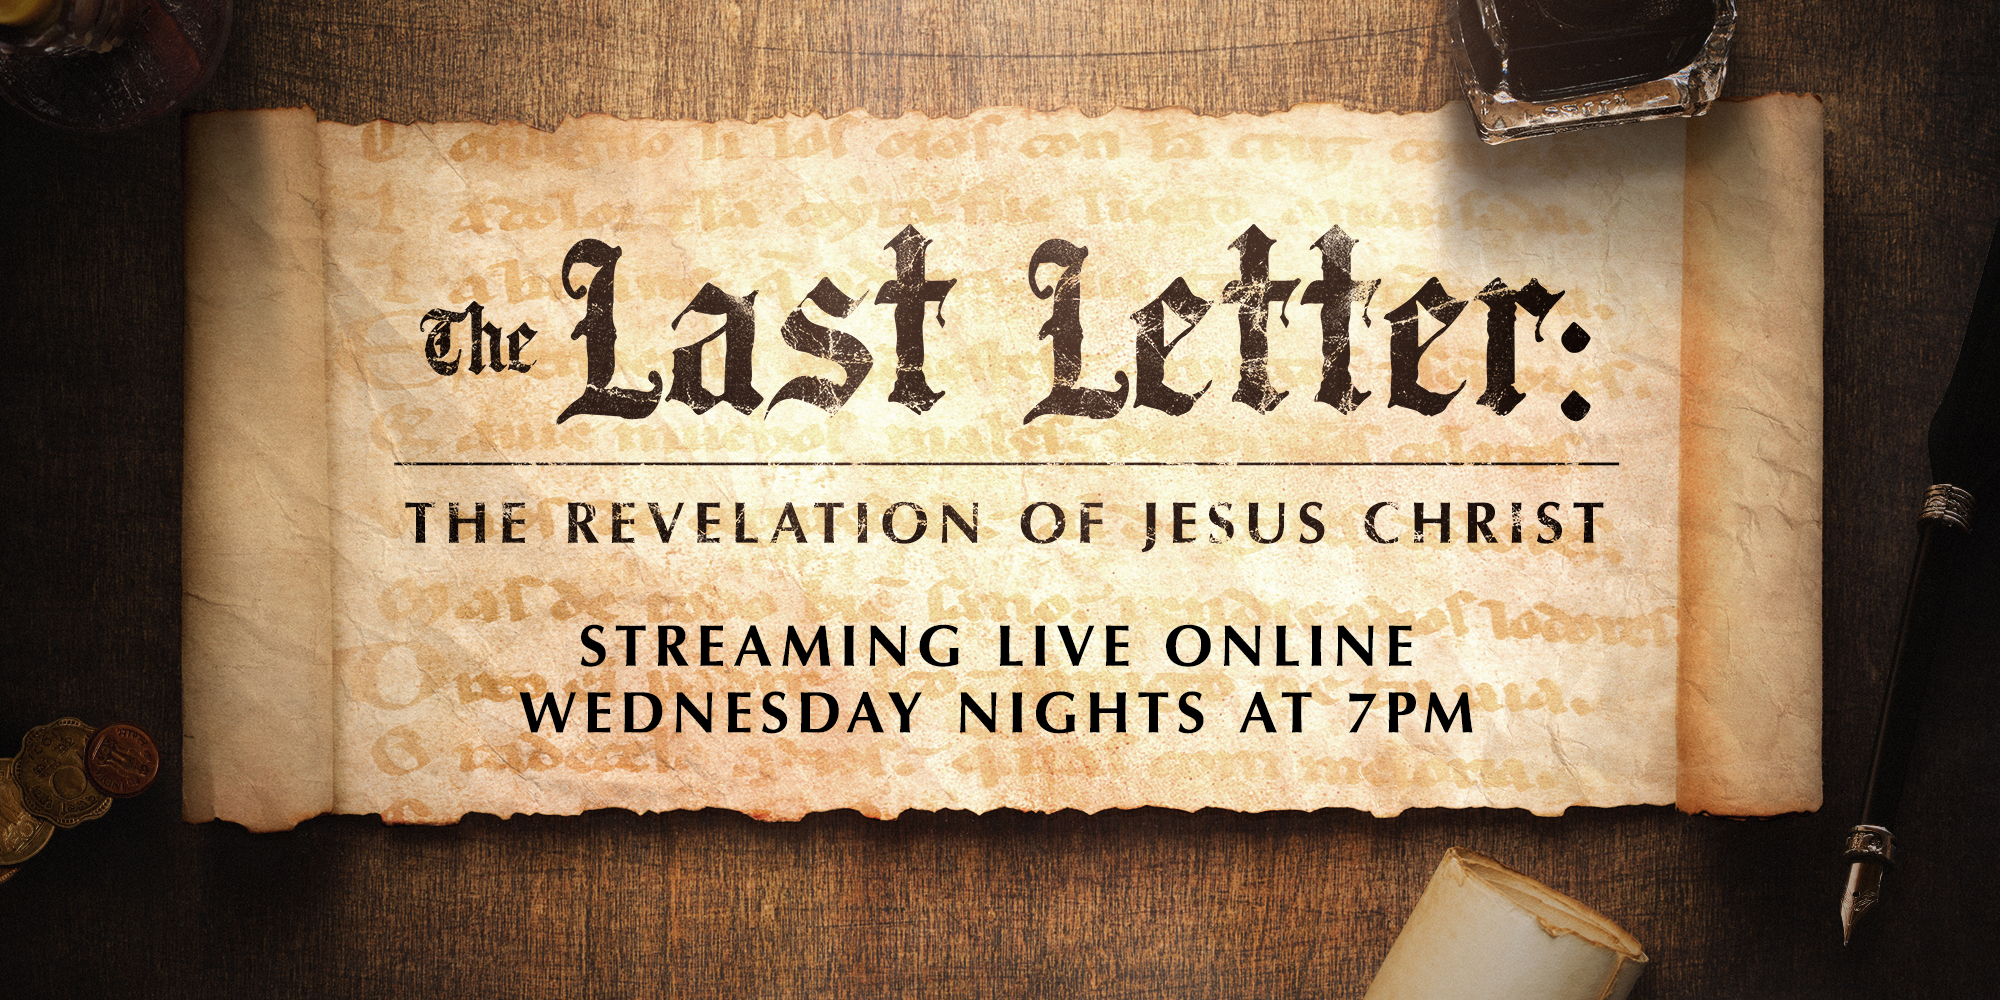 The Last Letter: The Revelation of Jesus Christ Streaming Live Online Wednesday Nights at 7PM